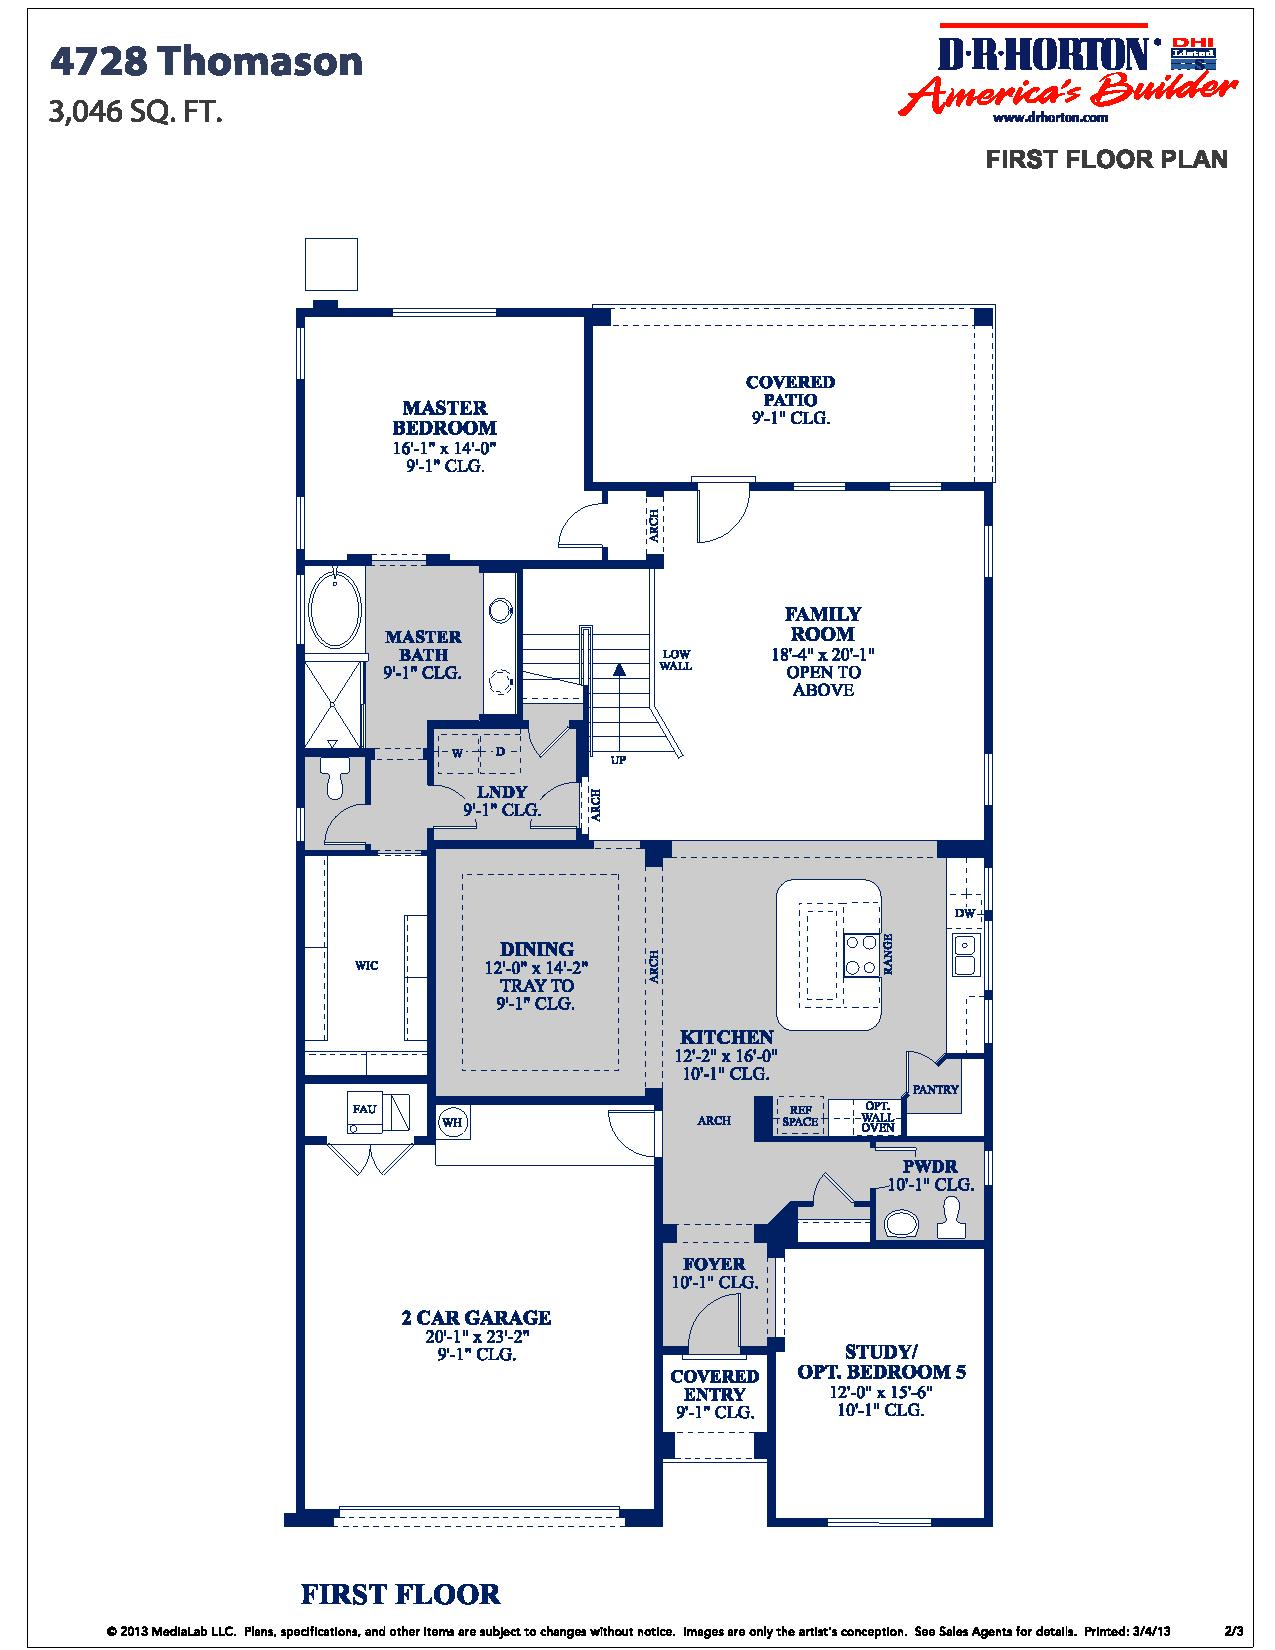 Dr horton thomason floor plan for Dr horton home share floor plans